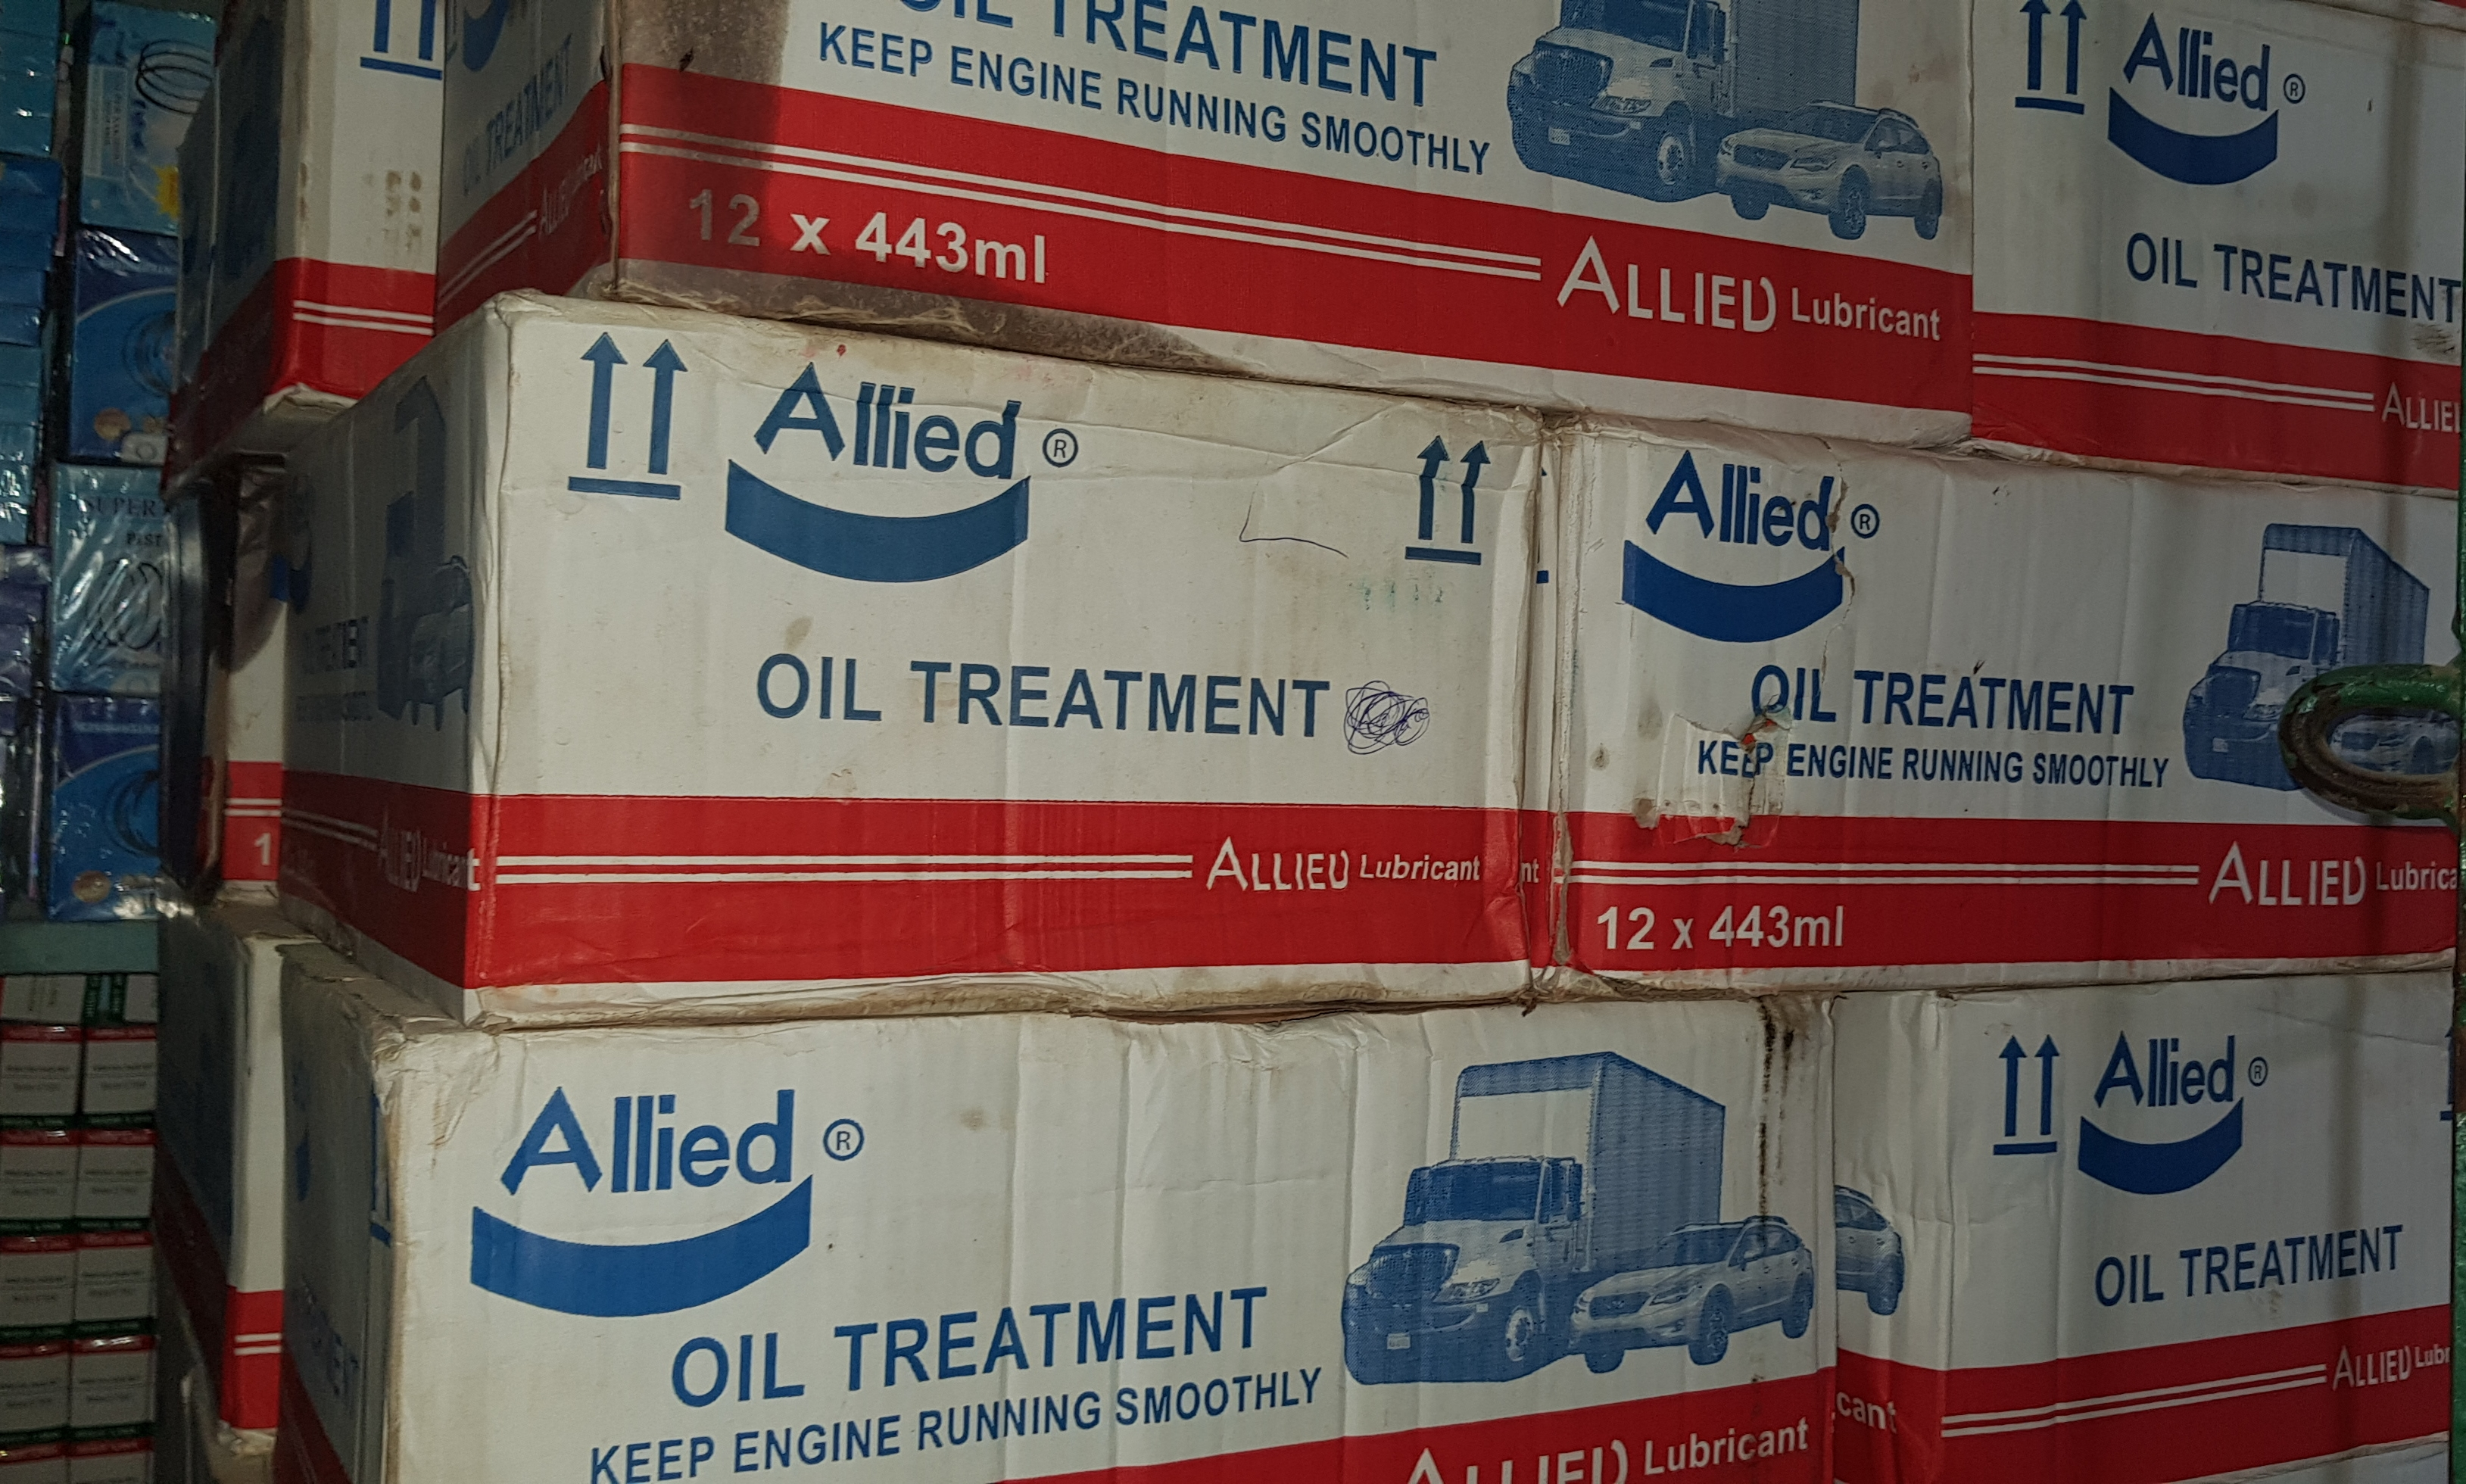 GENUINE ALLIED OIL TREATMENT